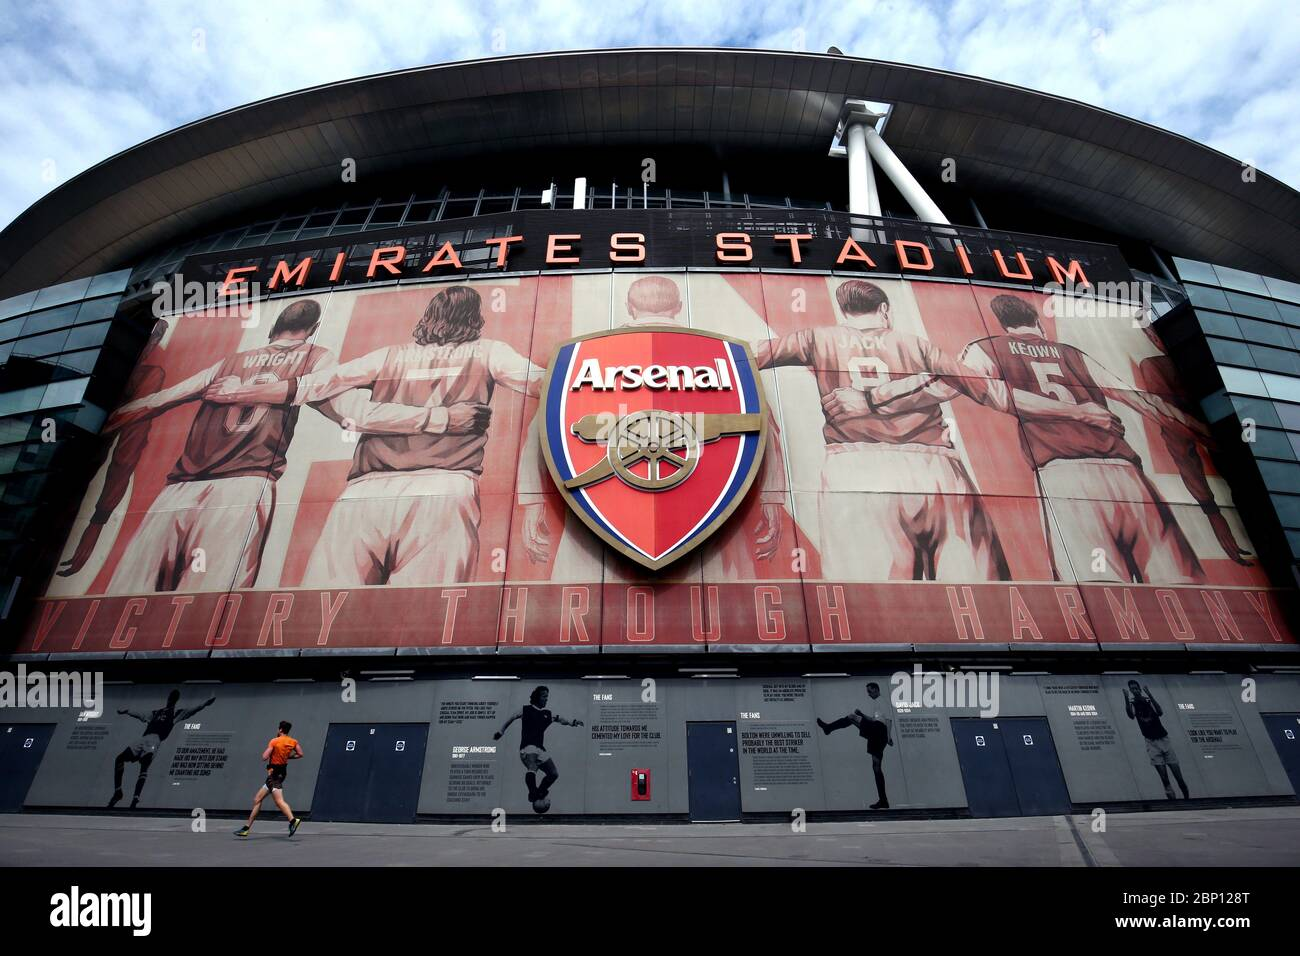 A lone jogger runs past the Emirates Stadium, home of Arsenal, today should have seen Arsenal take on Watford in what would have been their final Premier League game of the 19/20 season. Stock Photo